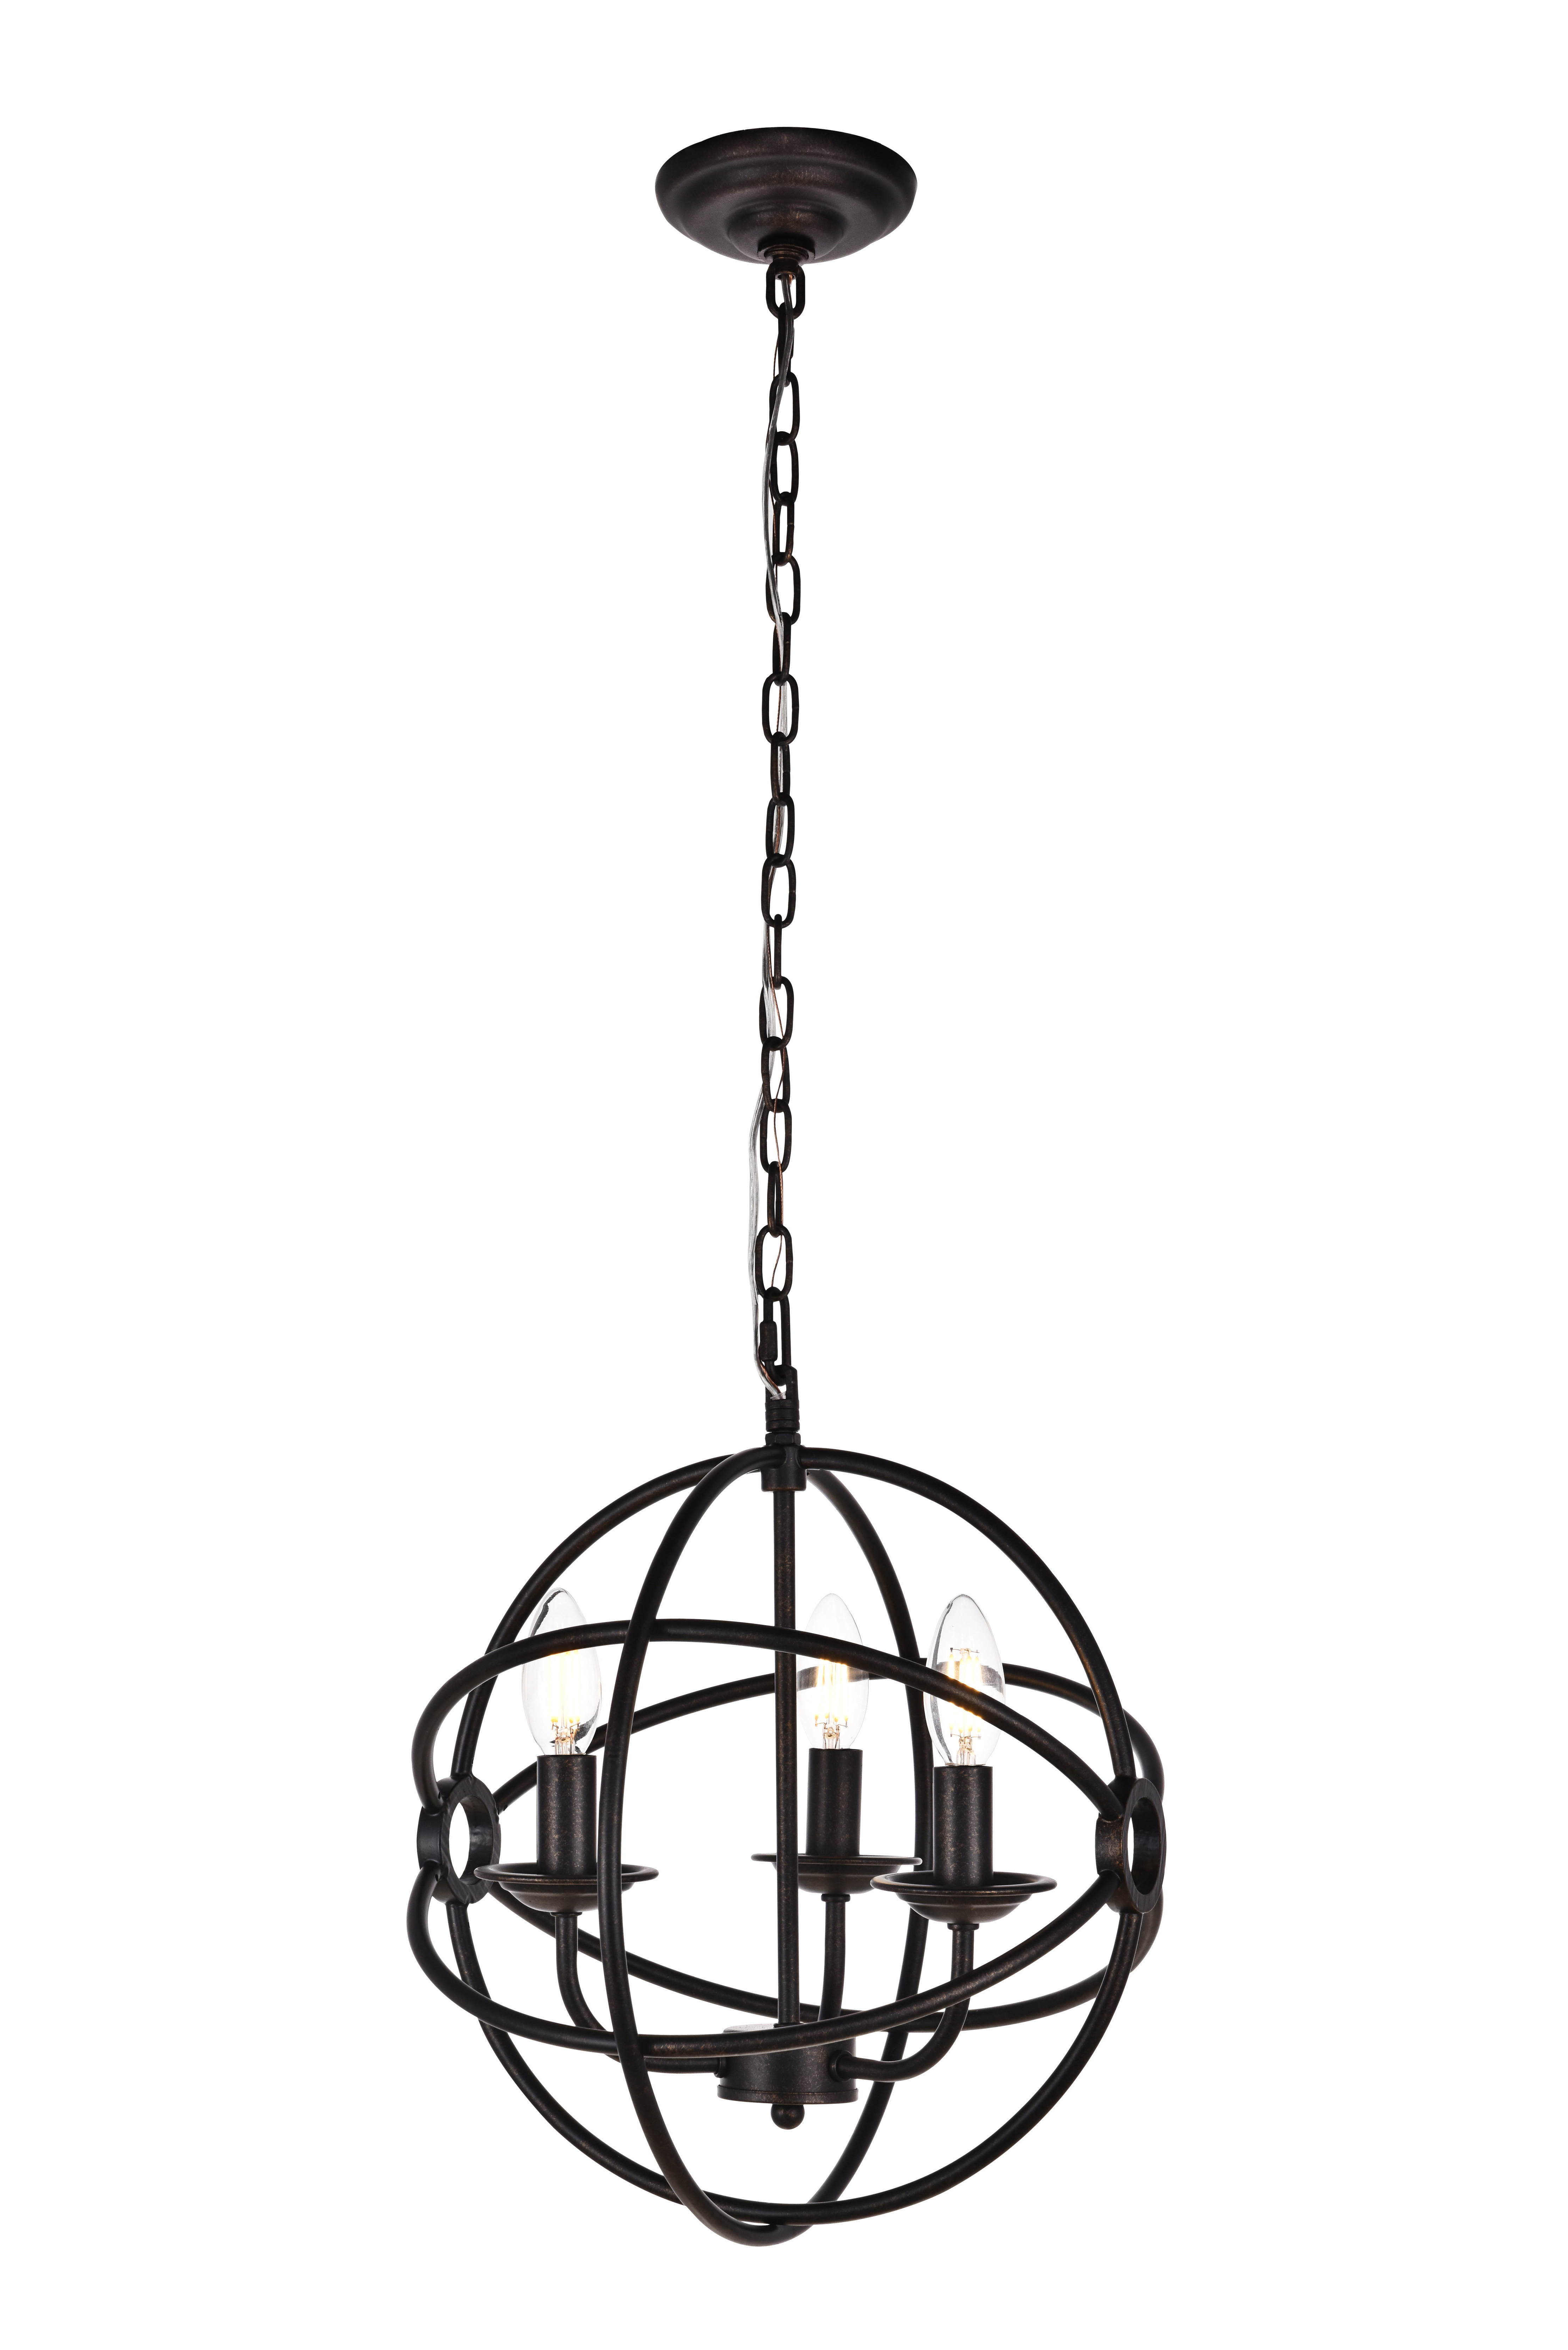 Best And Newest Shipststour 3 Light Globe Chandeliers With Shipststour 3 Light Globe Chandelier (Gallery 2 of 20)